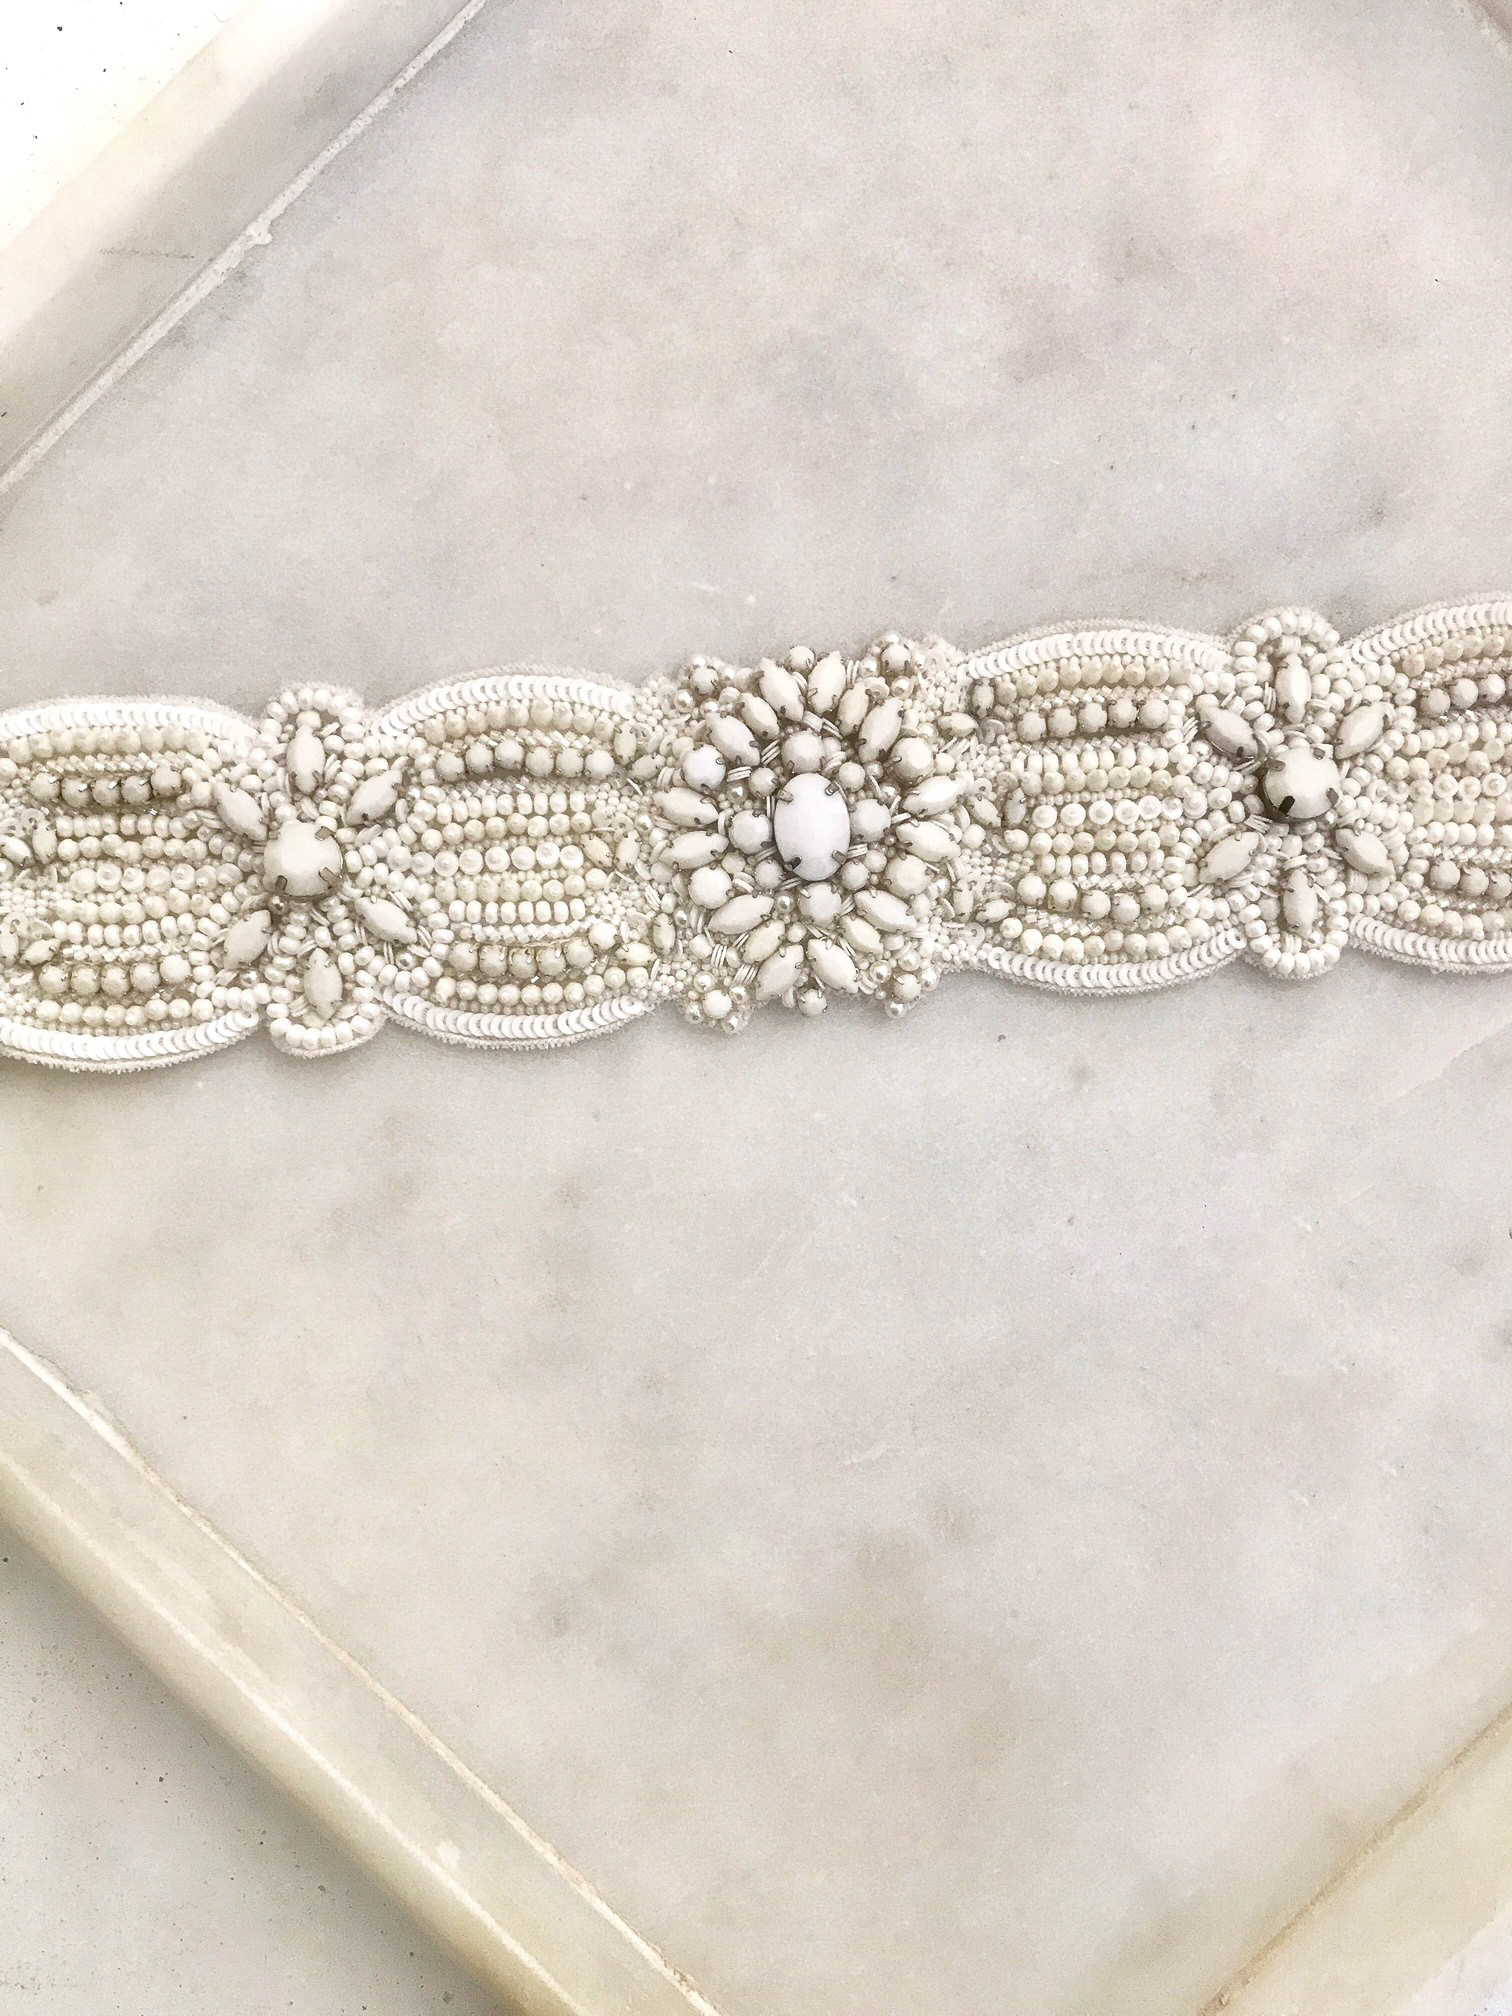 CASABLANCA BELT – This statement wedding belt features oversized crystals and off white stones that have been delicately hand woven onto silk. To be worn around the waist and ties with a silk ribbon around the back.